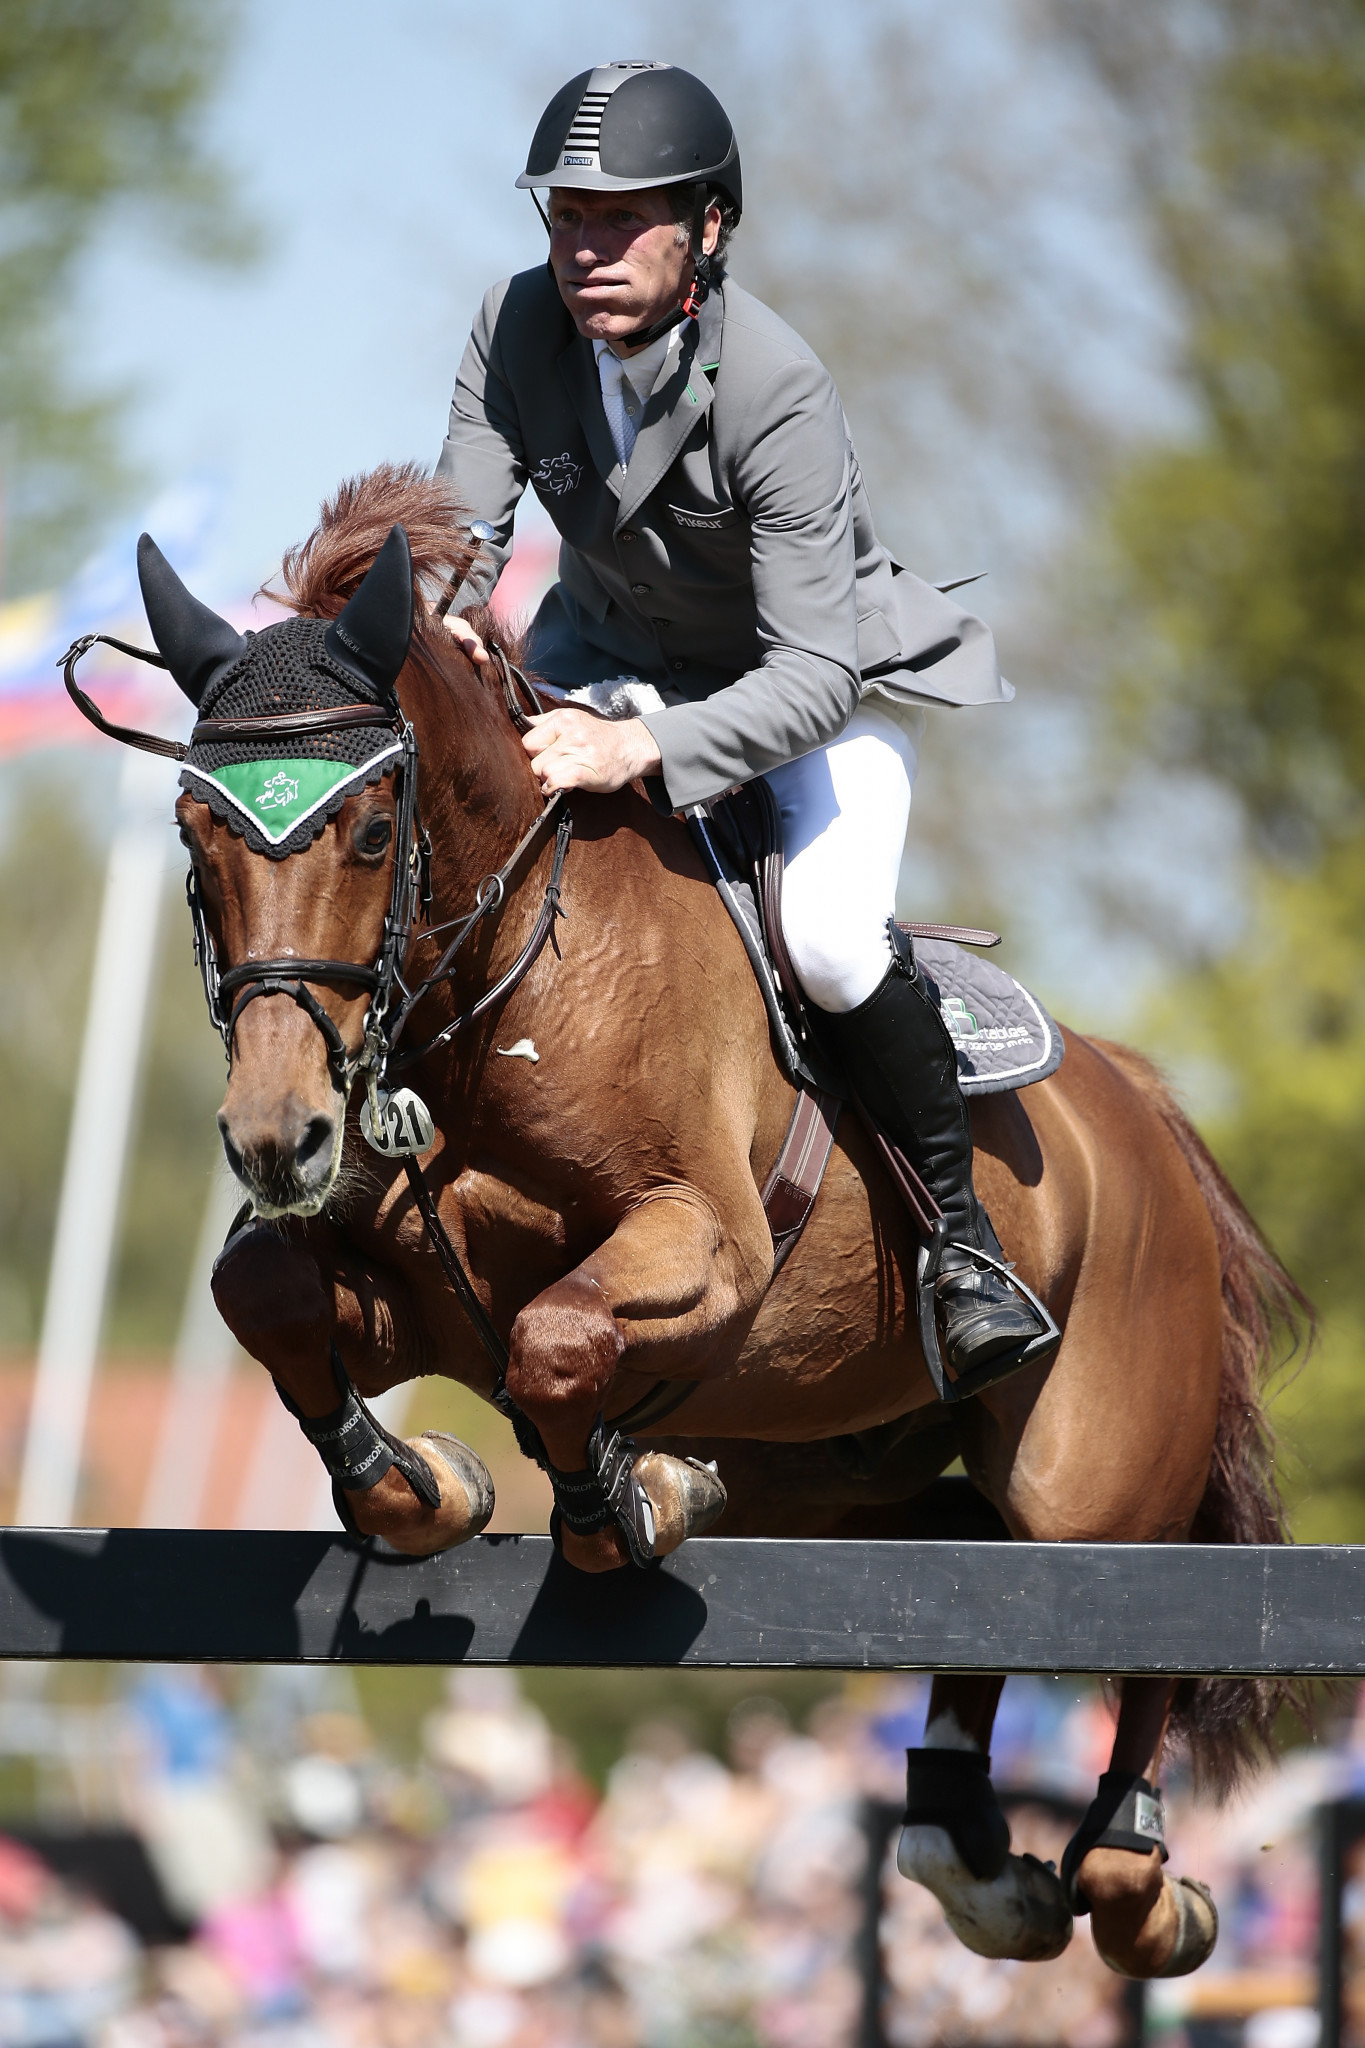 Germany's multiple Olympic champion Ludger Beerbaum was the only rider left in the jump-off after Edwin Tops-Alexander but could not prevent her winning the latest stage of the World Cup Western European League ©FEI